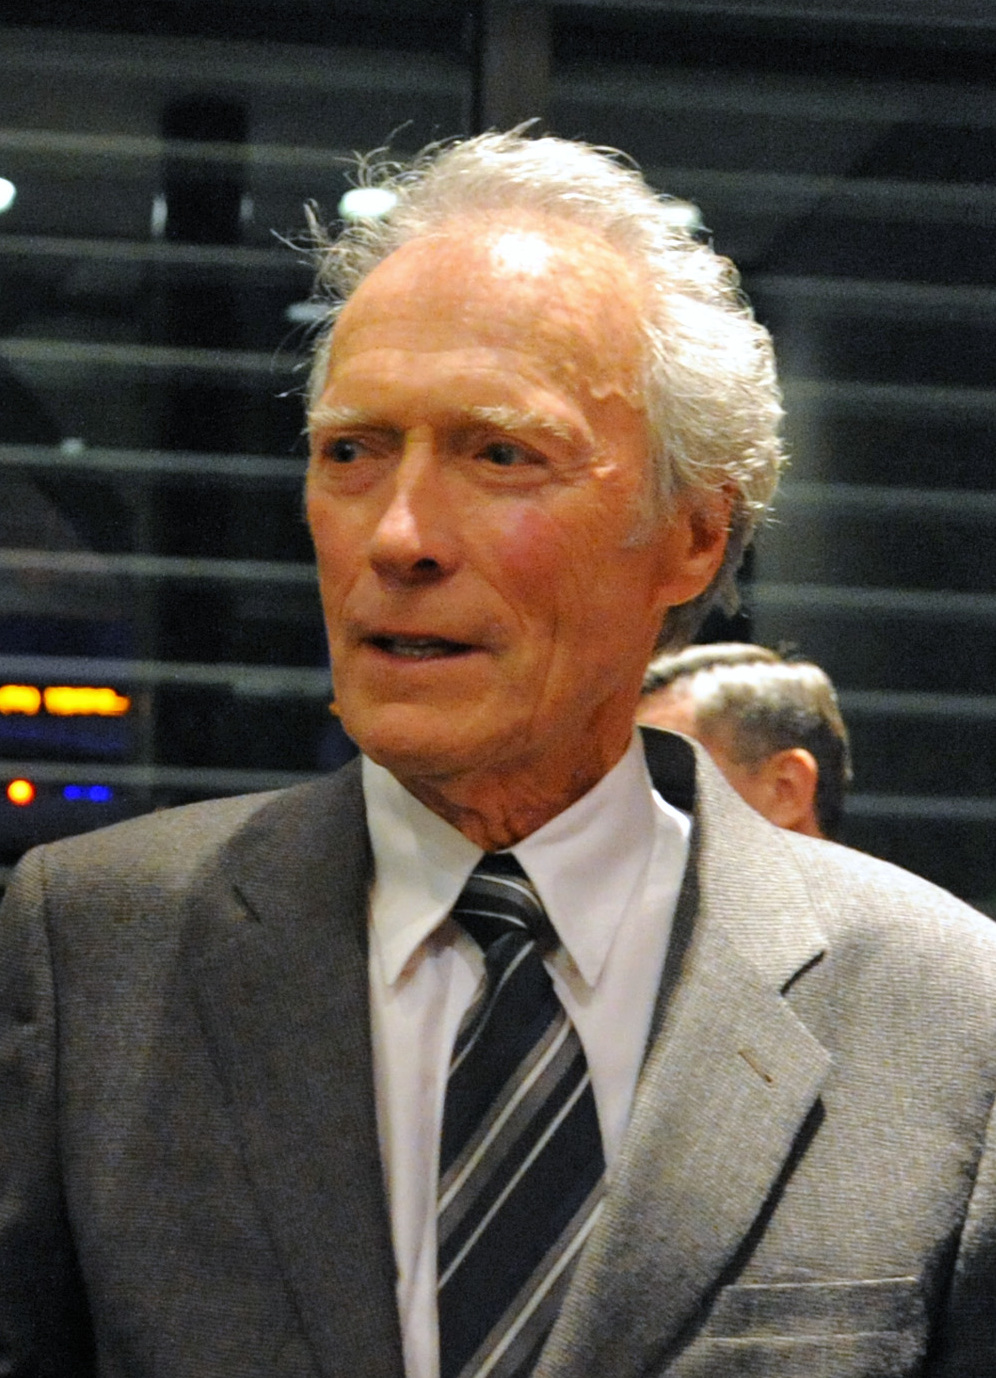 Photograph of Clint Eastwood